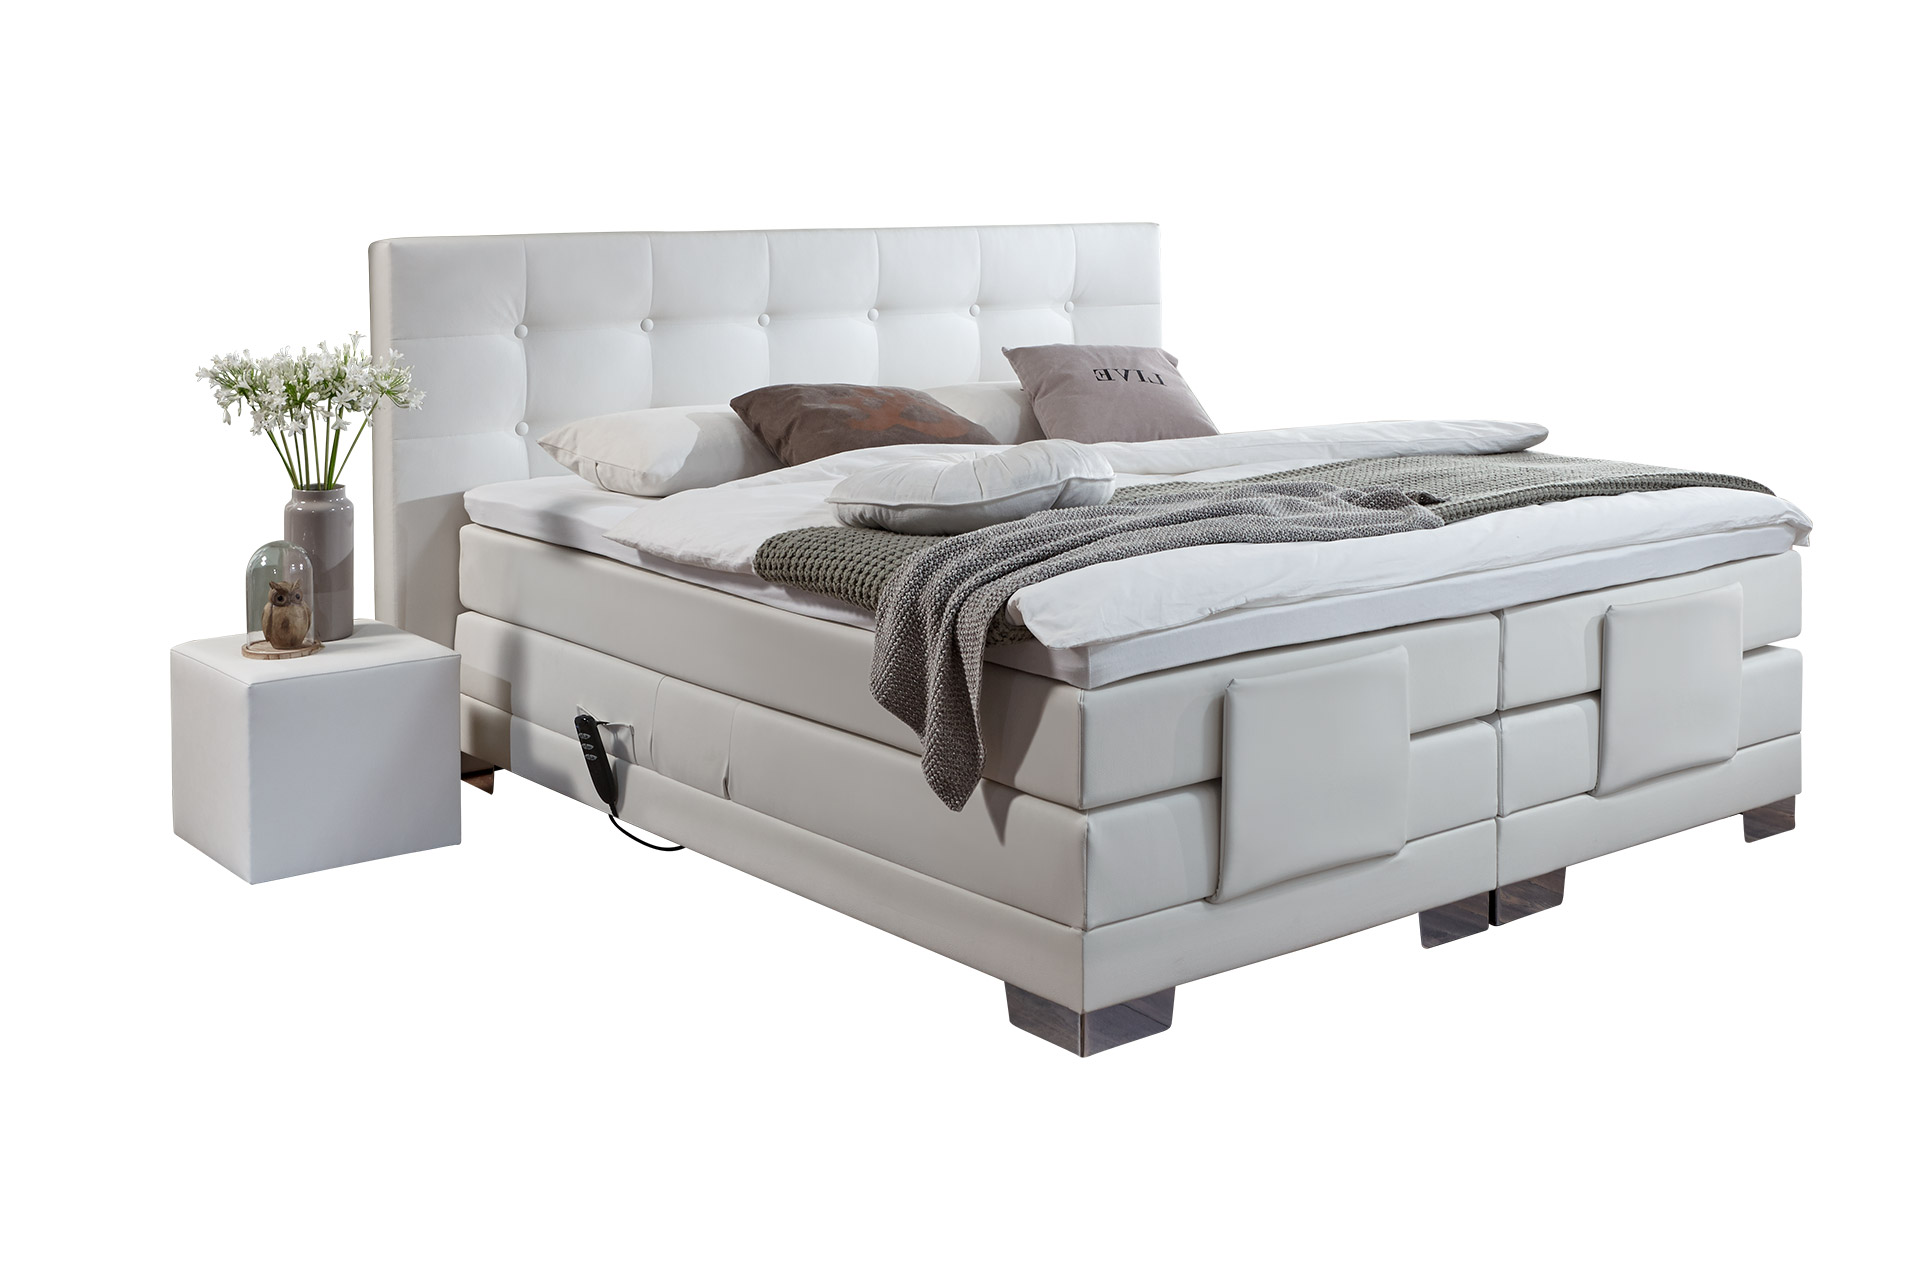 boxspringbett elektrisch verstellbar swiss diamond. Black Bedroom Furniture Sets. Home Design Ideas